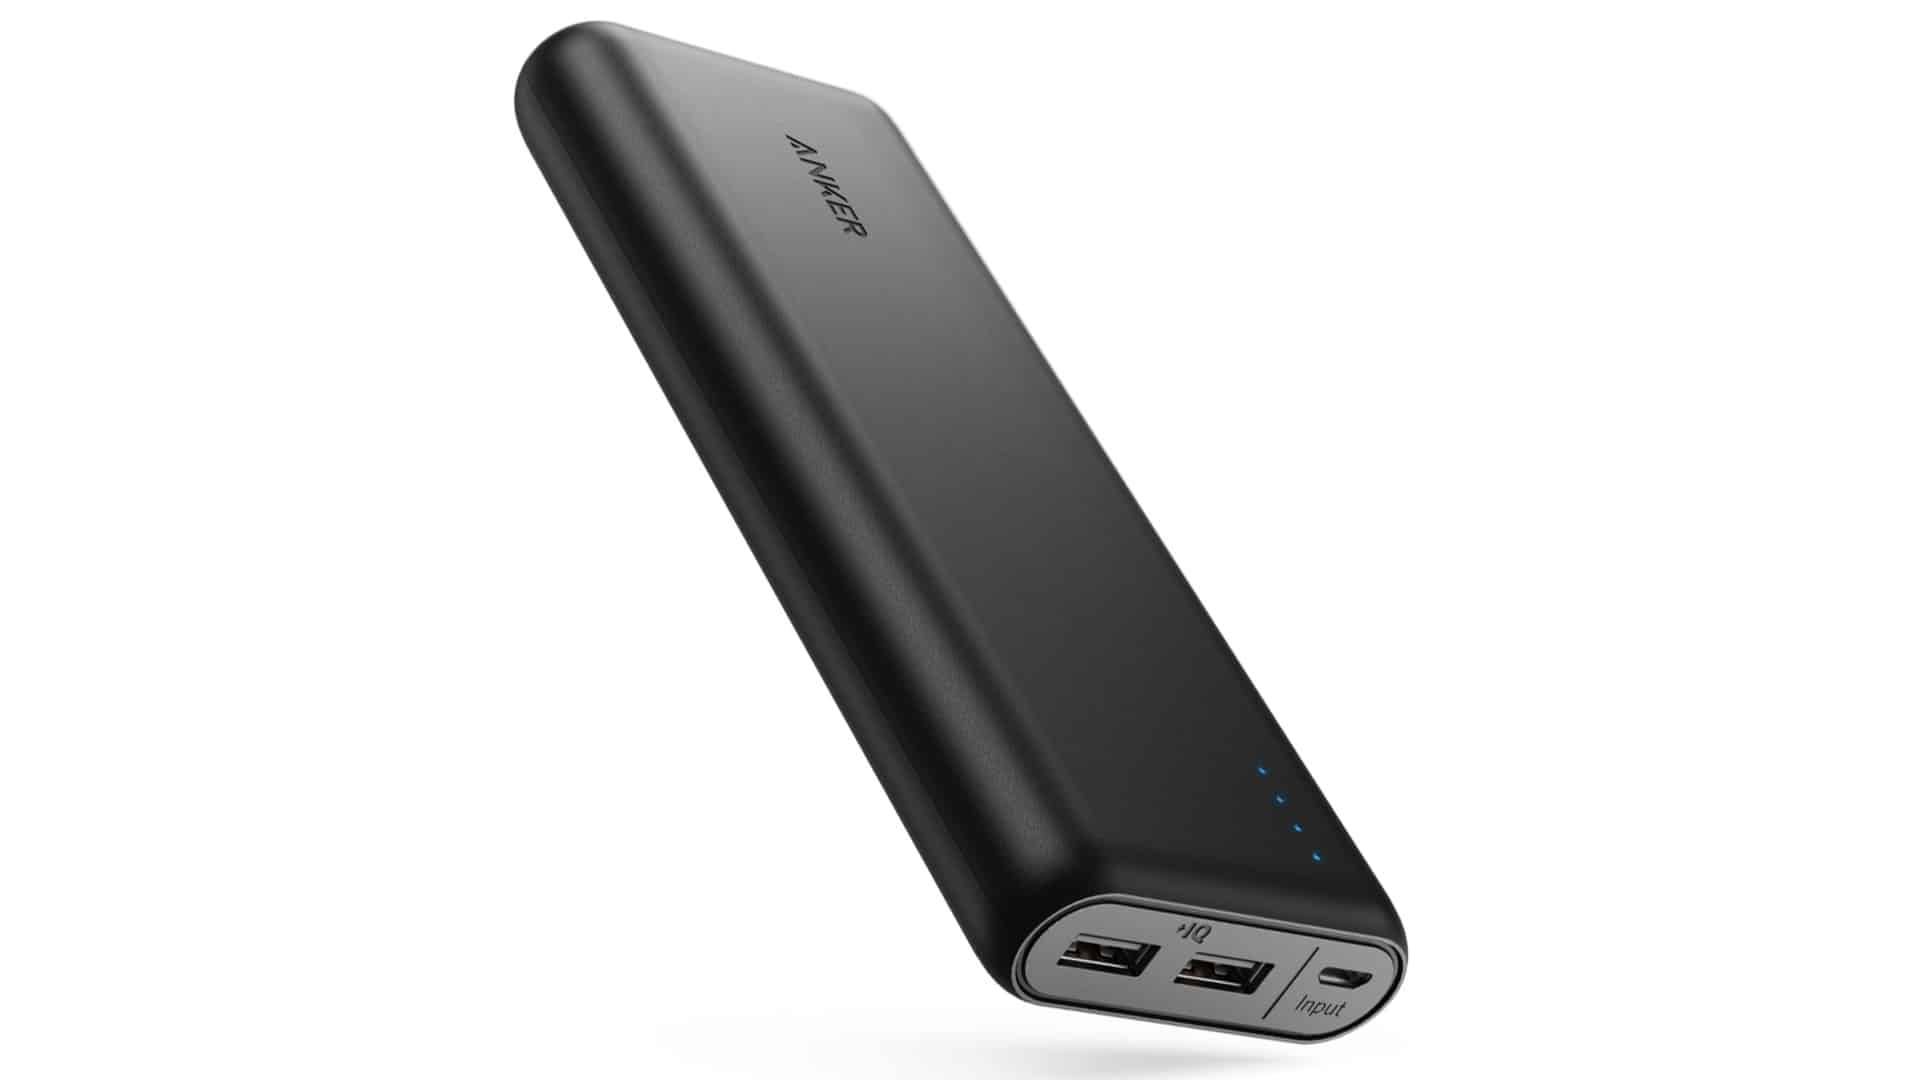 Save Big On Anker Charging Accessories In This Early Black Friday Deal